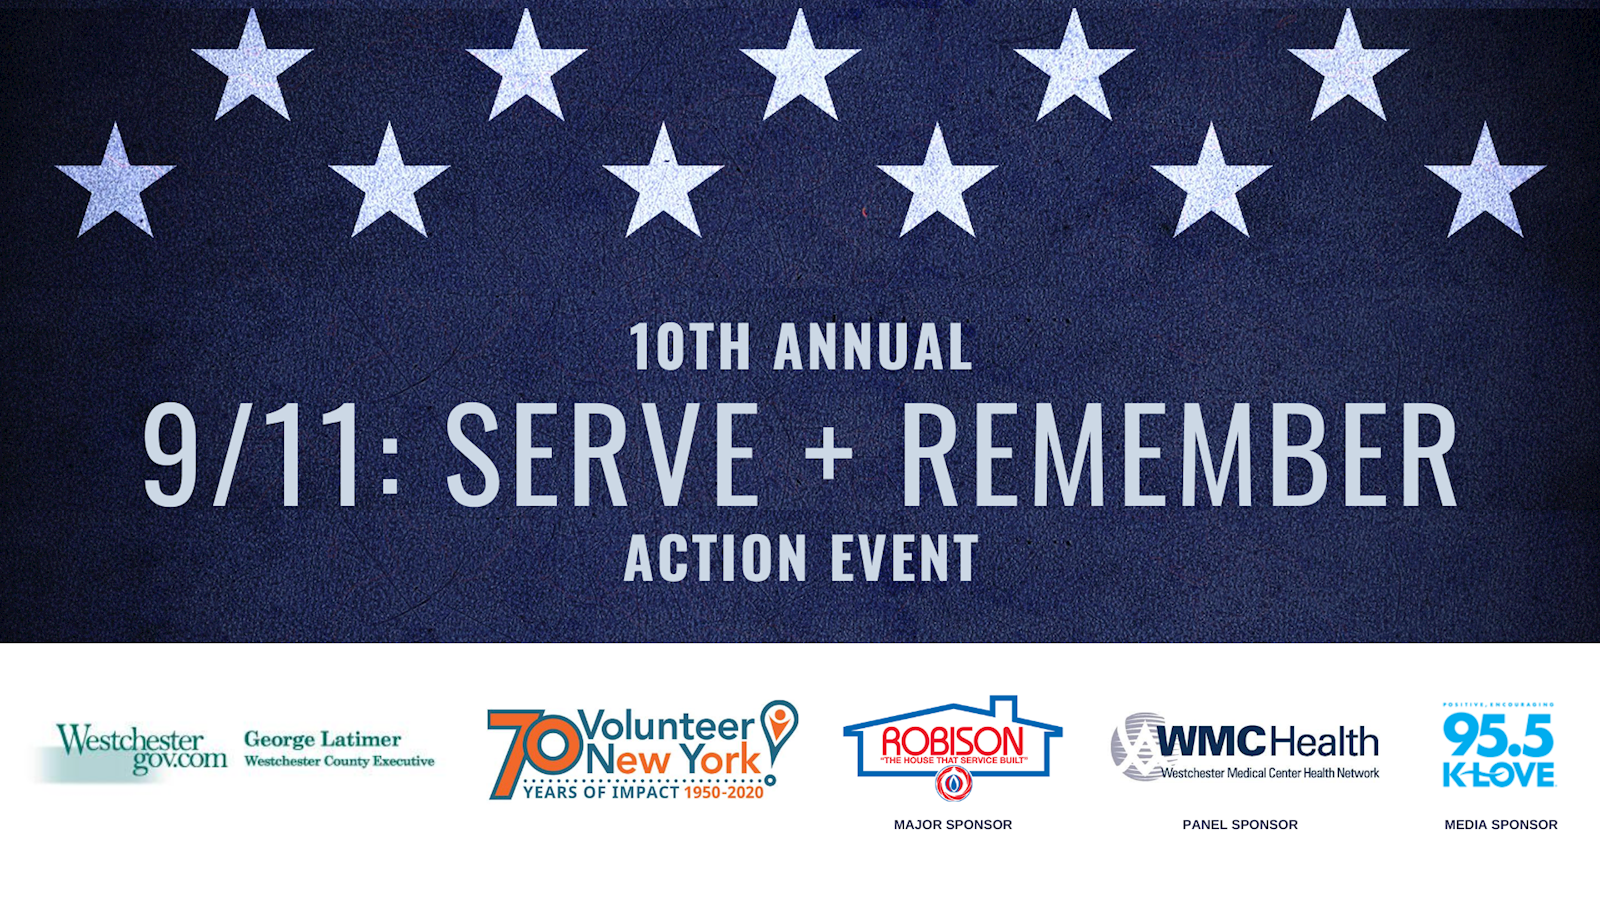 Registration for 9/11: Serve + Remember now open. Everyone can serve!